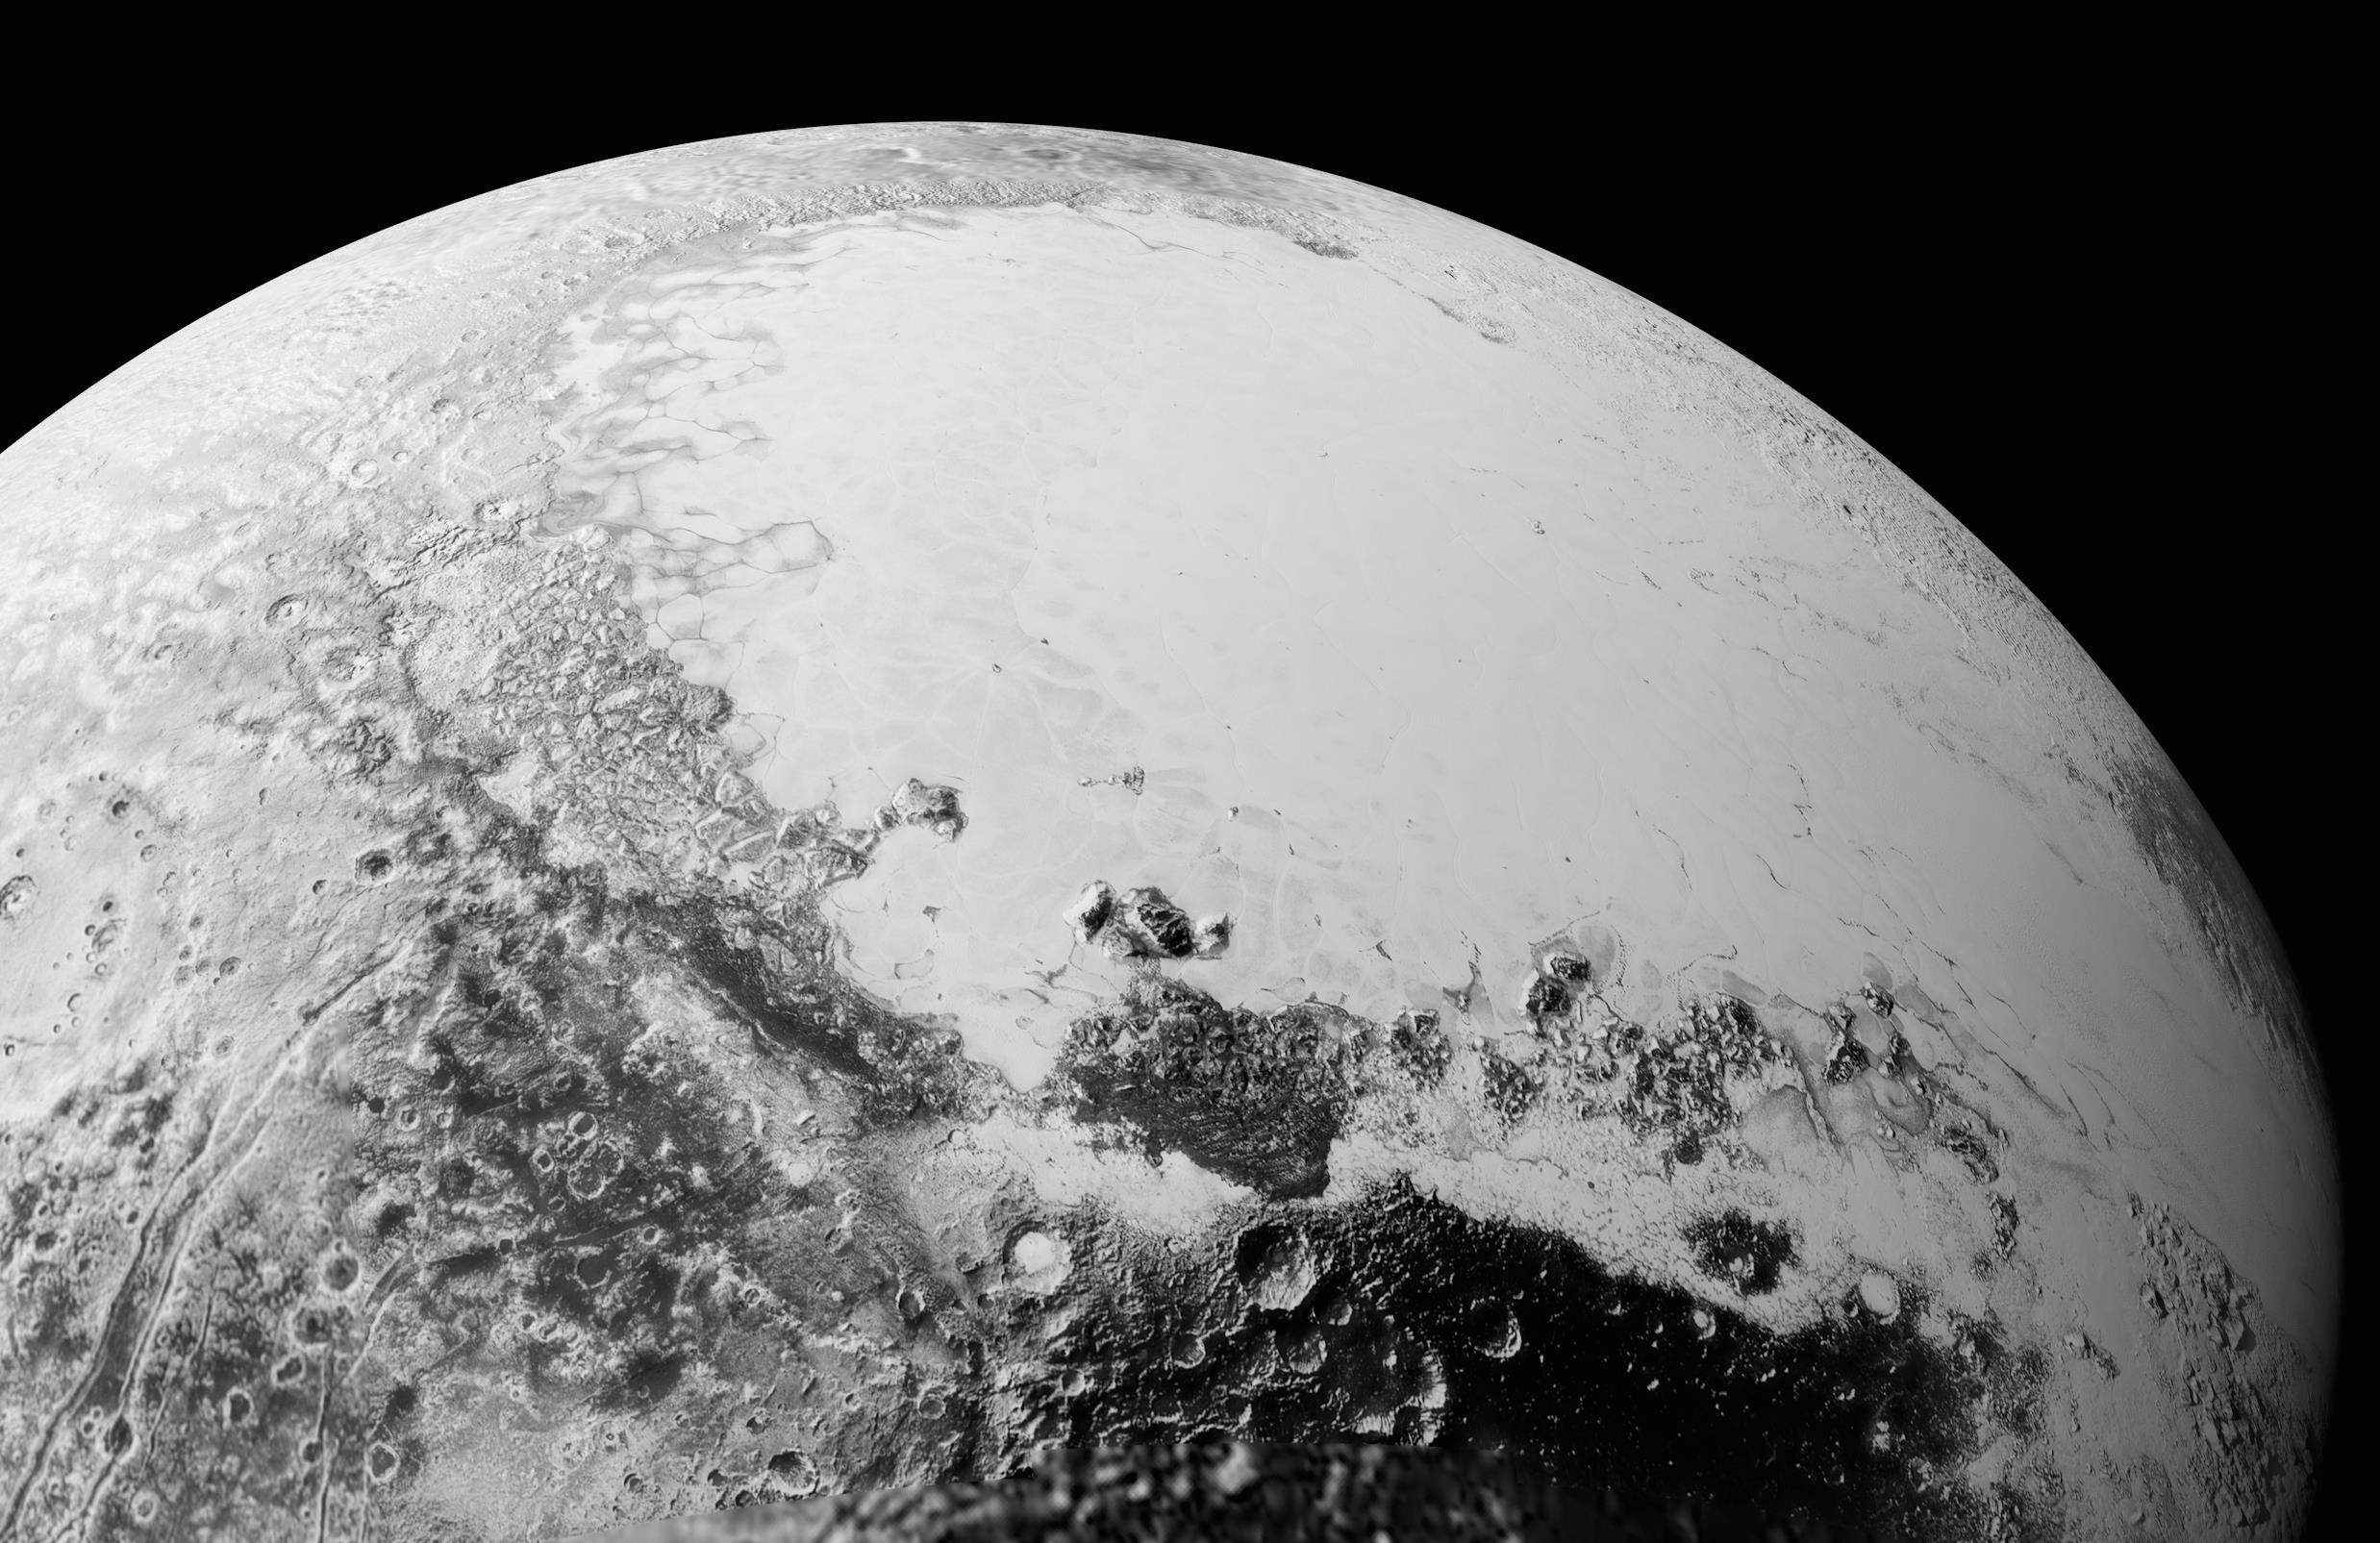 This synthetic perspective view of Pluto, based on the latest high-resolution images to be downlinked from NASA's New Horizons spacecraft, shows what you would see if you were approximately 1,100 miles (1,800 kilometers) above Pluto's equatorial area, looking northeast over the dark, cratered, informally named Cthulhu Regio toward the bright, smooth, expanse of icy plains informally called Sputnik Planum. The entire expanse of terrain seen in this image is 1,100 miles (1,800 kilometers) across. The images were taken as New Horizons flew past Pluto on July 14, 2015, from a distance of 50,000 miles (80,000 kilometers). Credit: NASA/Johns Hopkins University Applied Physics Laboratory/Southwest Research Institute